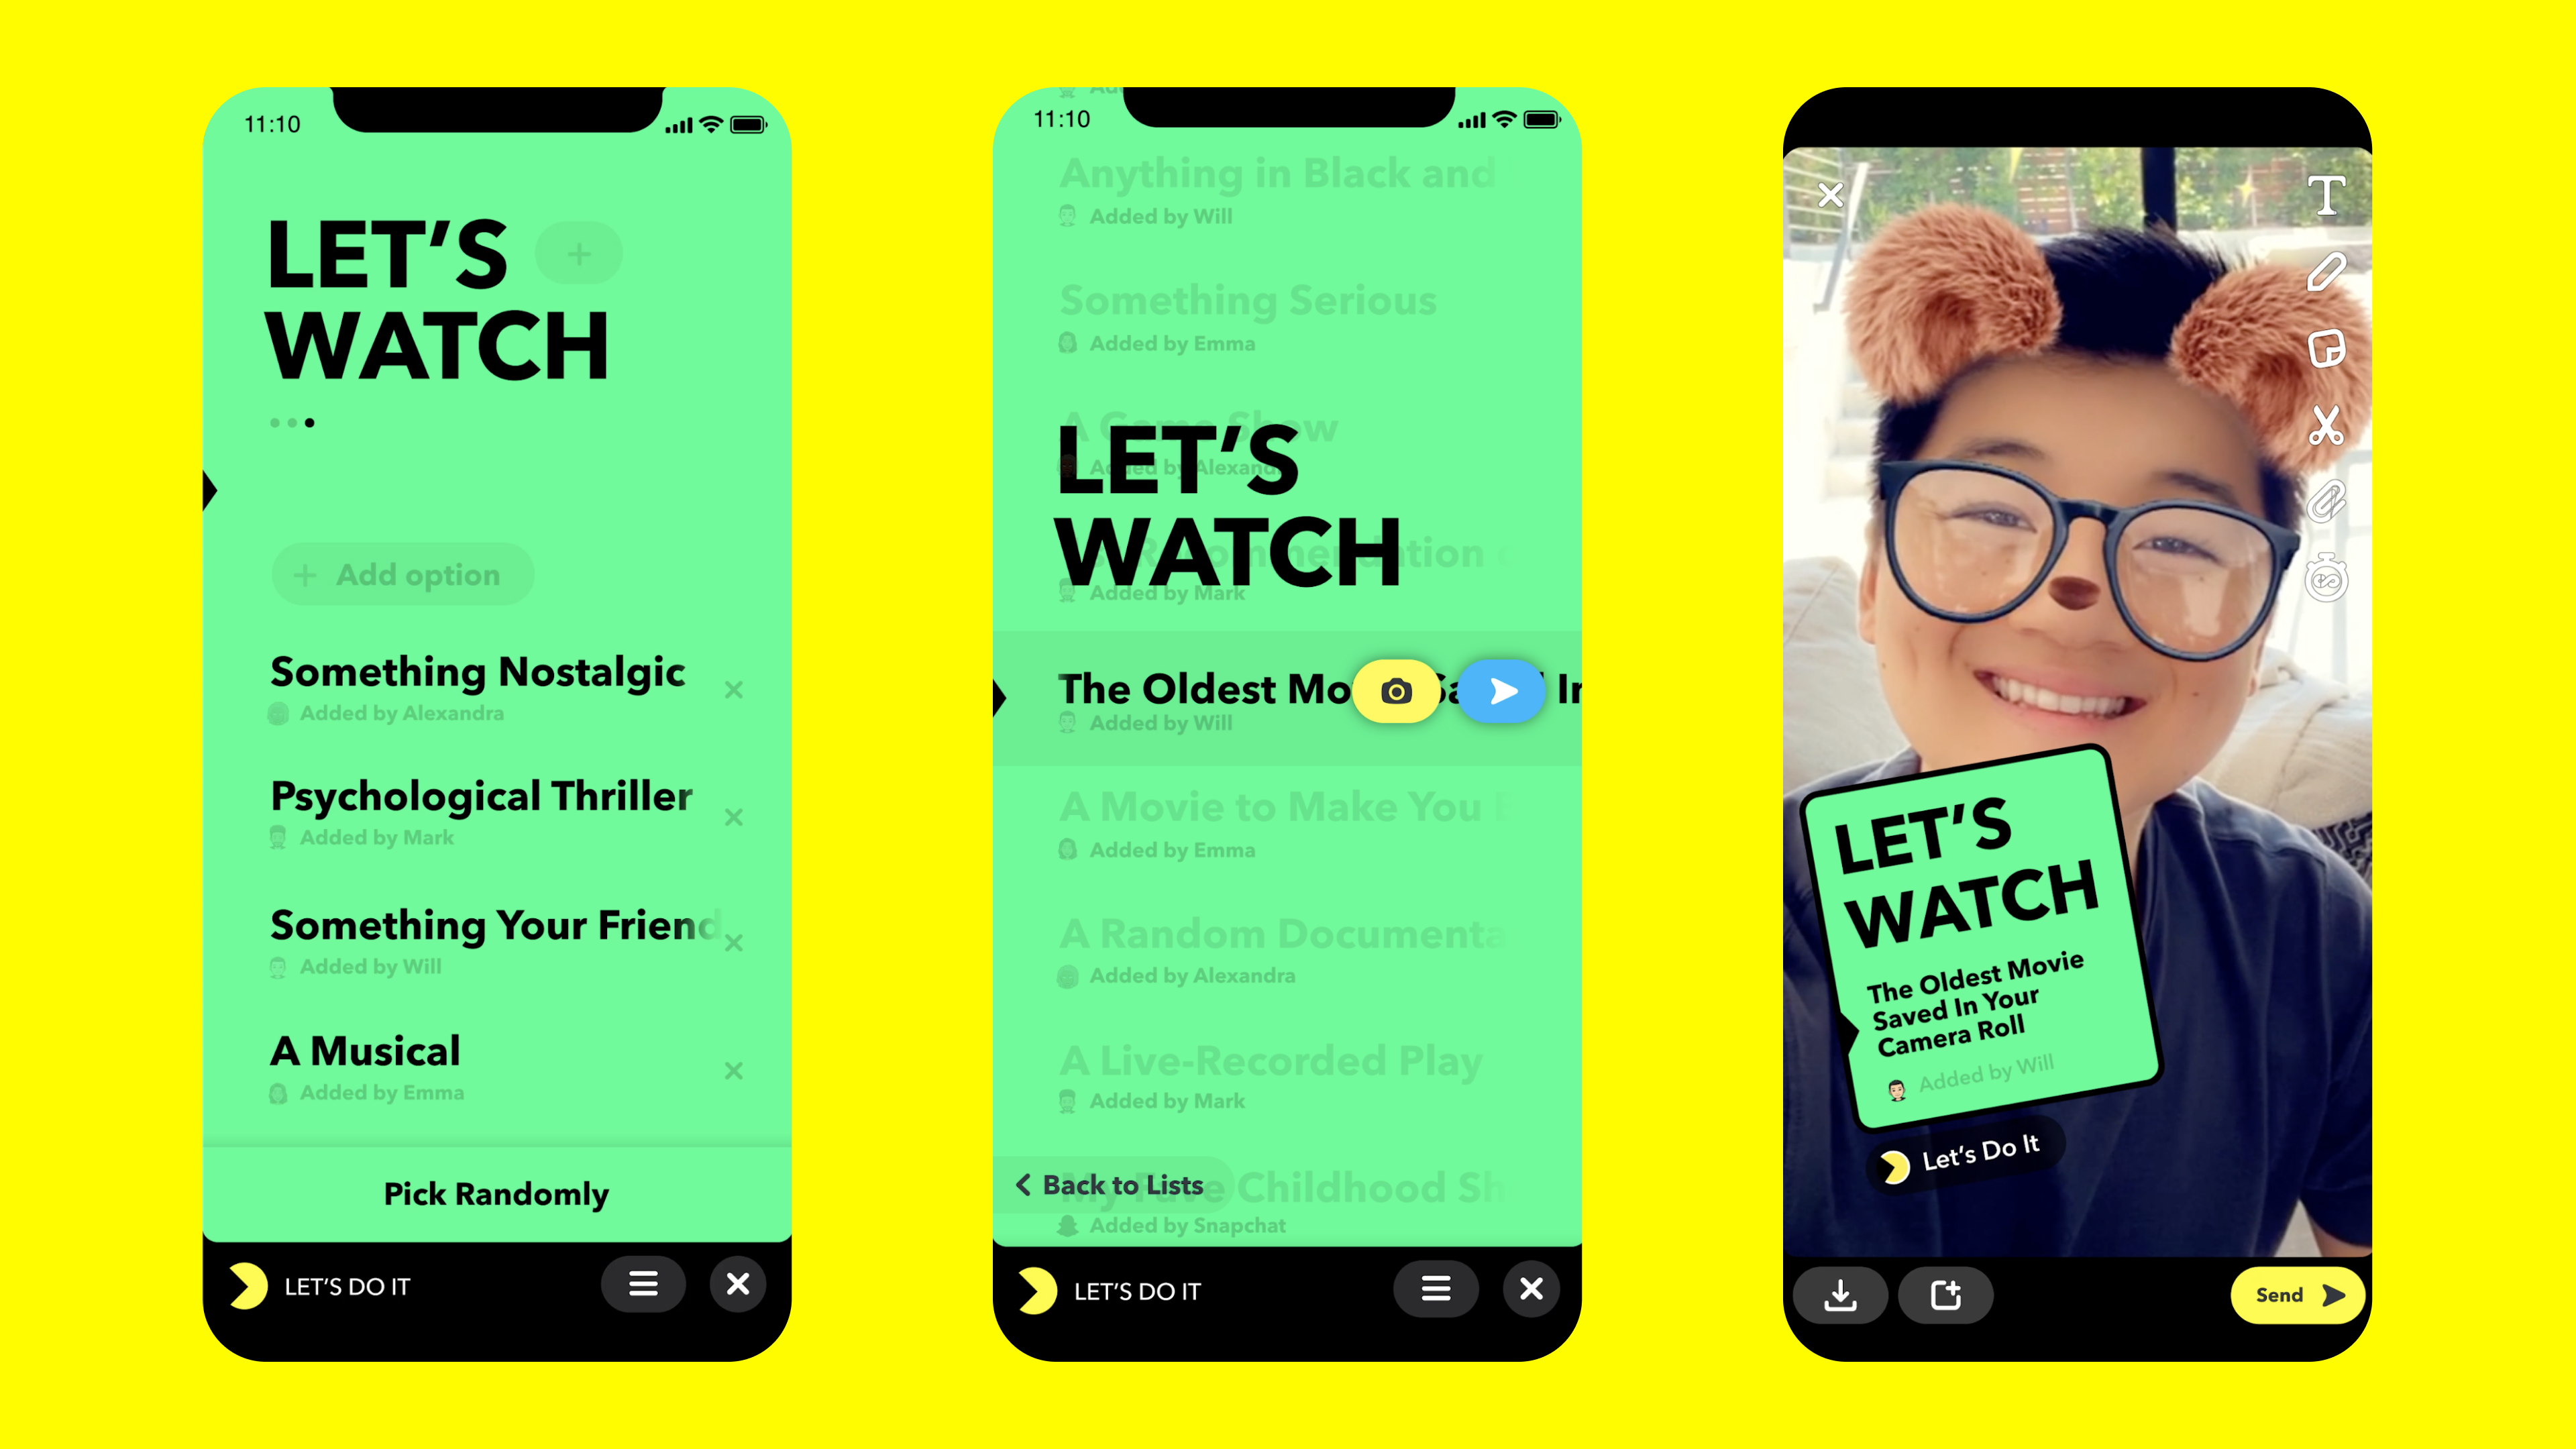 Snapchat debuts Minis, bite-sized third-party apps that live inside chat |  TechCrunch